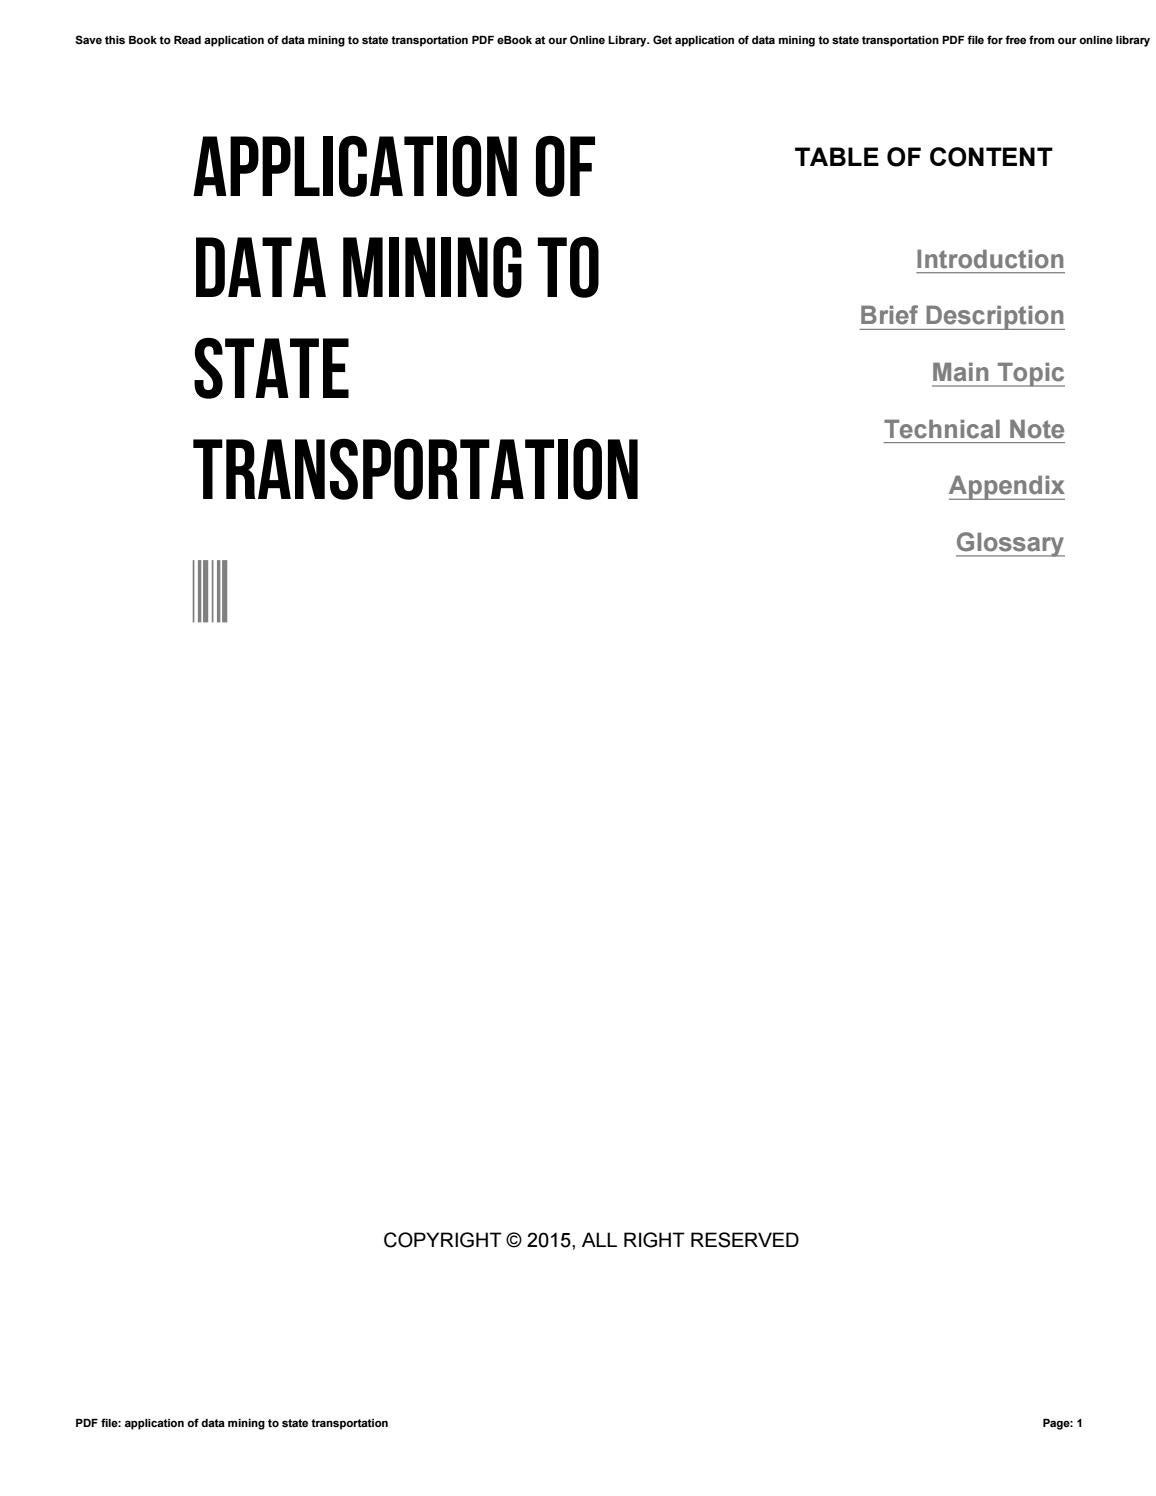 Application of data mining to state transportation by